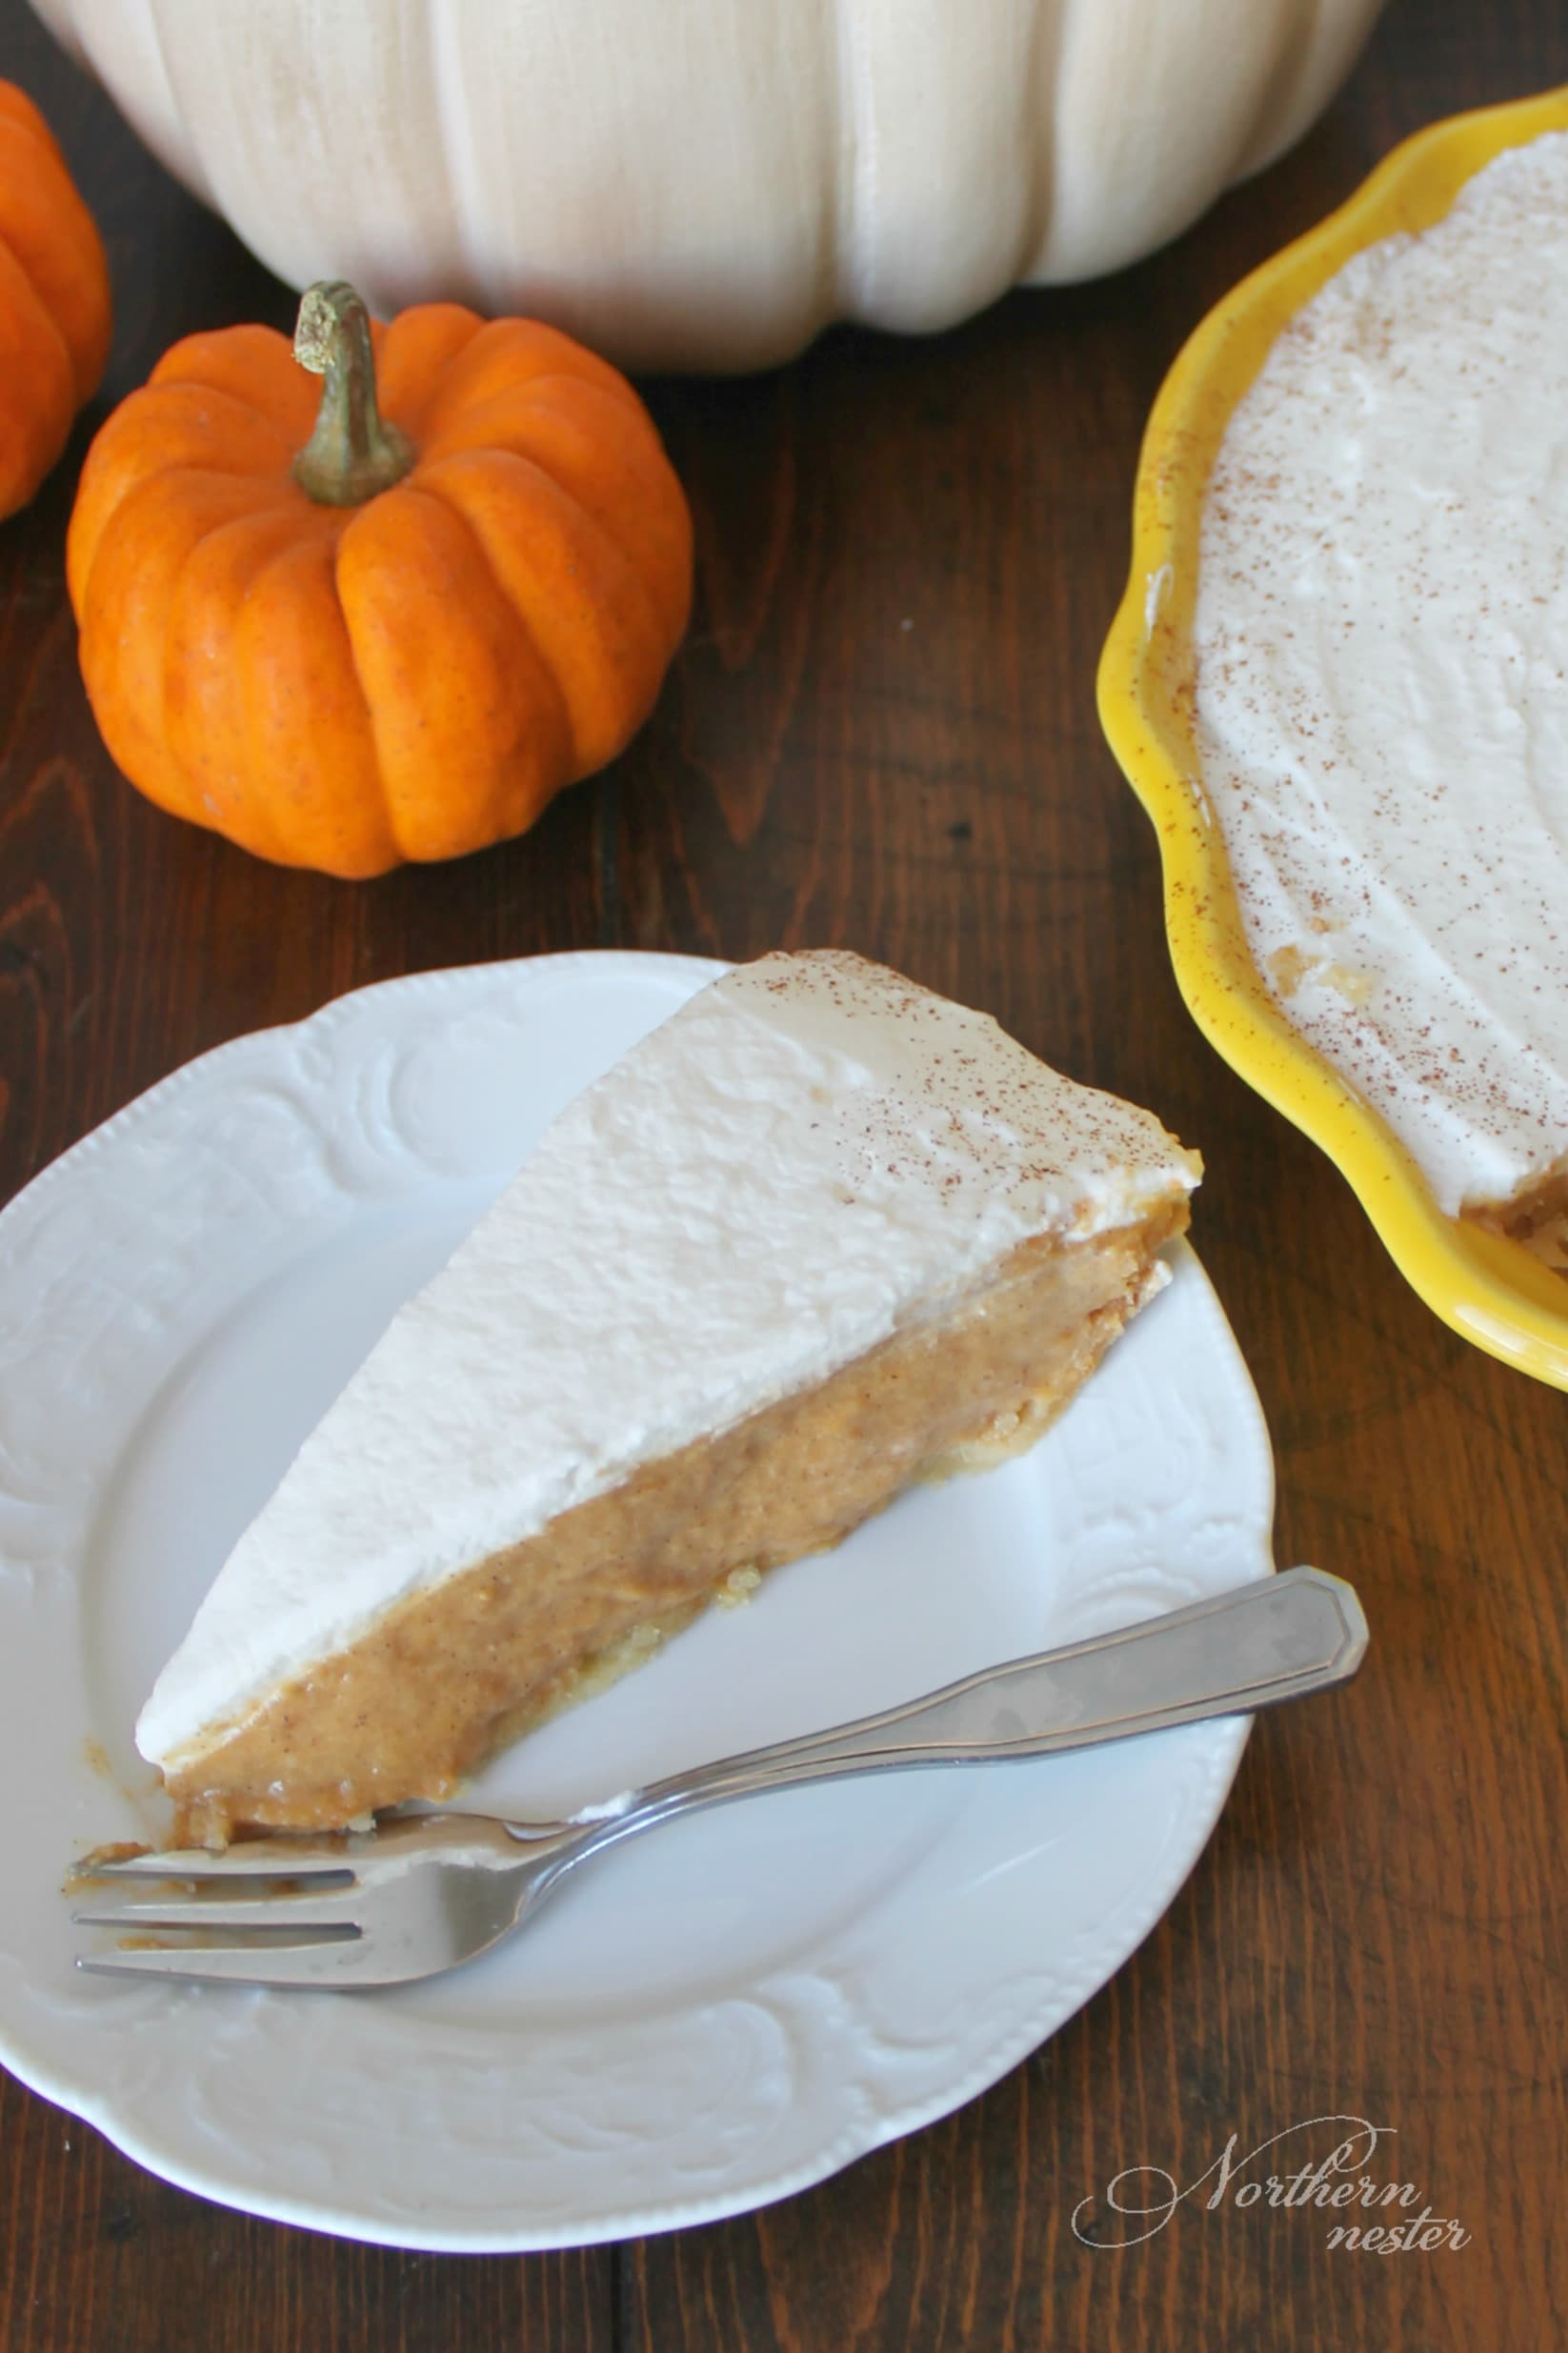 Pumpkin Chiffon Pie | THM: S - Northern Nester